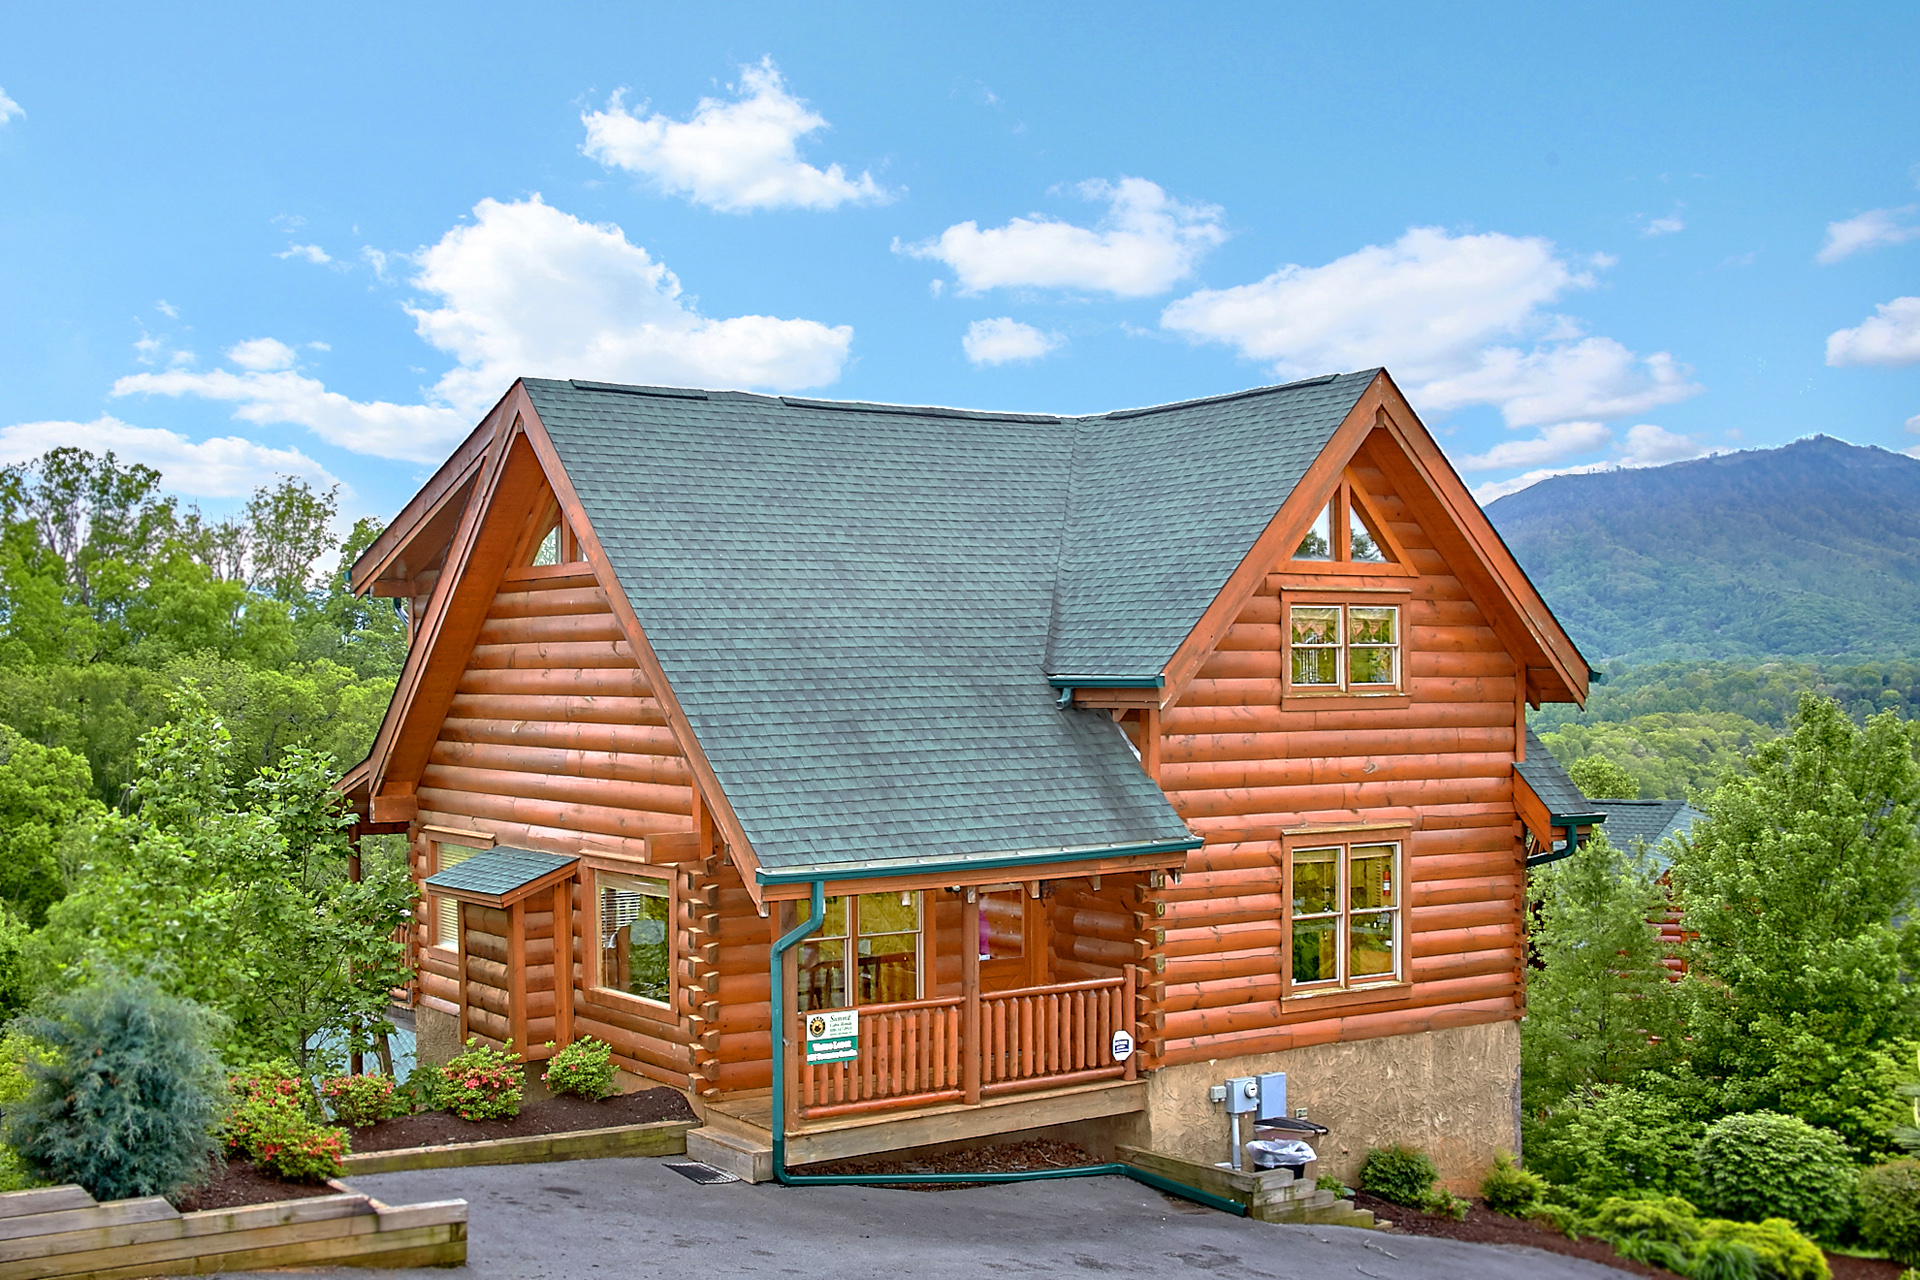 pigeon and chalets homes for spectacular forge wonderful tn sale log to offer views with cabins mountain fireside gatlinburg you enjoy decks